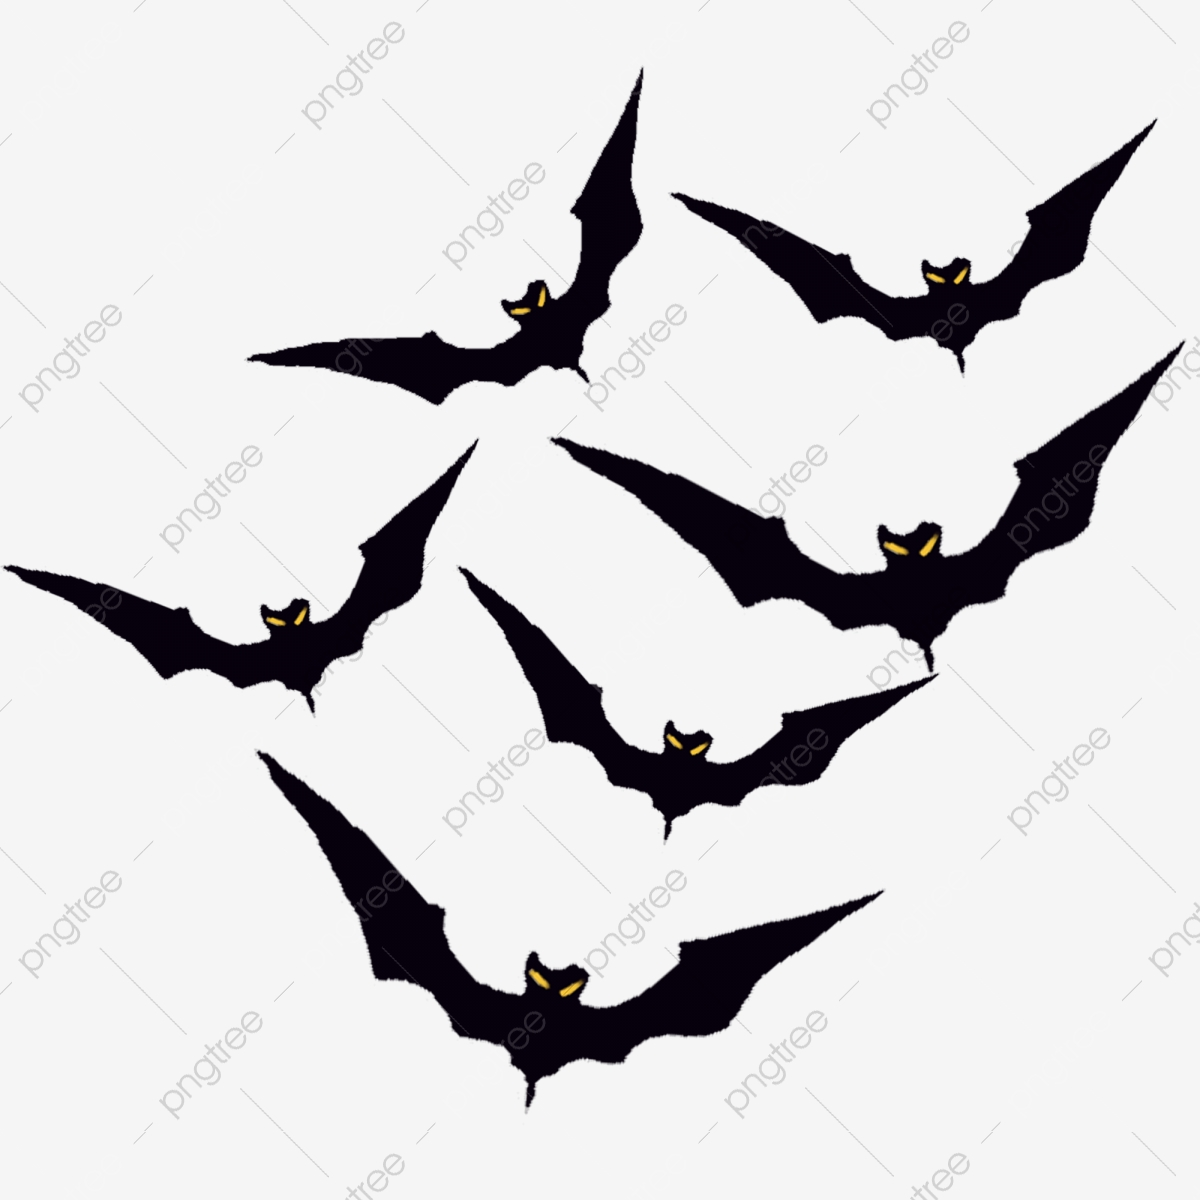 Bat Bird Halloween Png Transparent Image And Clipart For Free Download